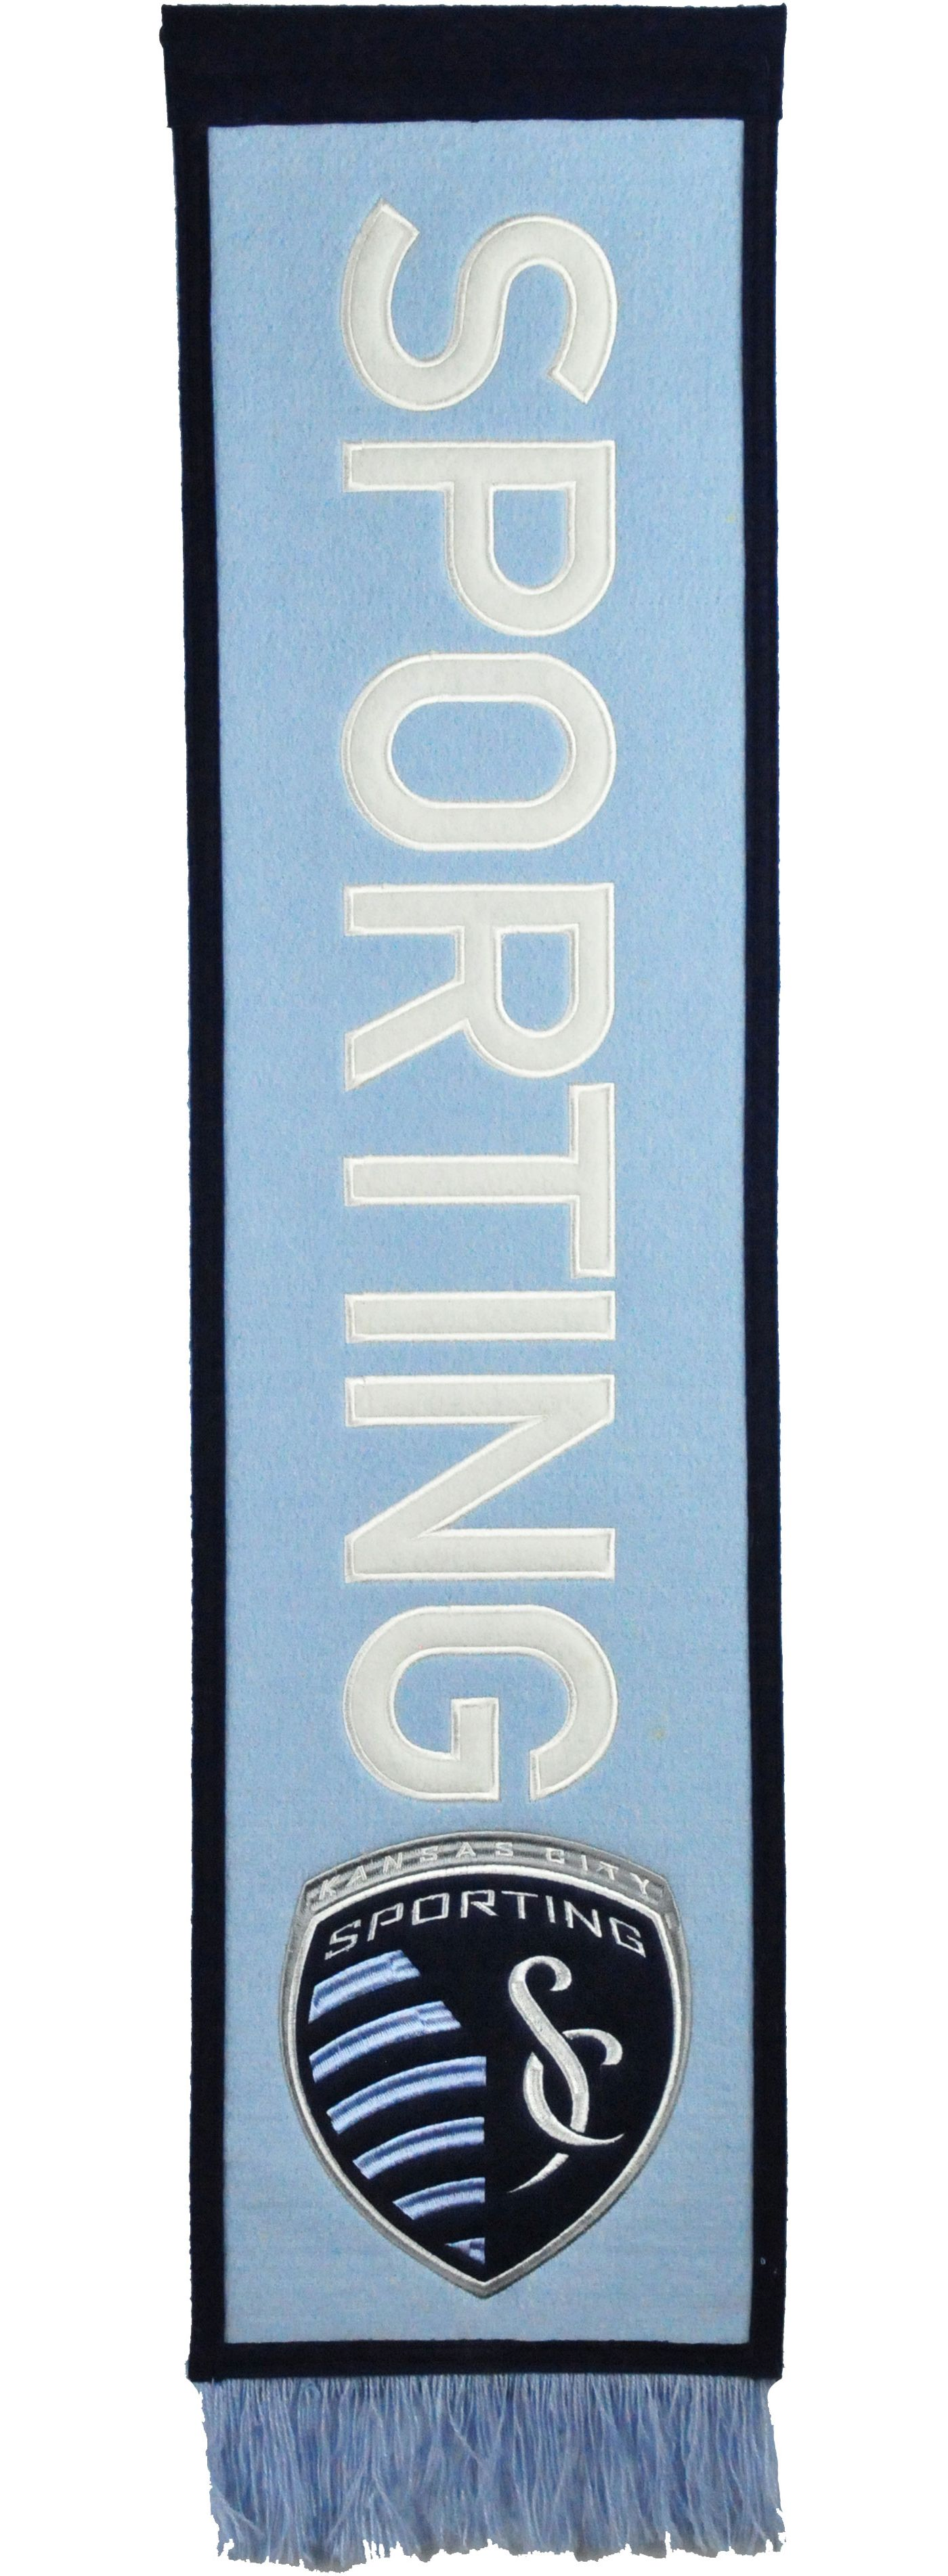 Winning Streak Sports Sporting Kansas City Scarf Team Banner